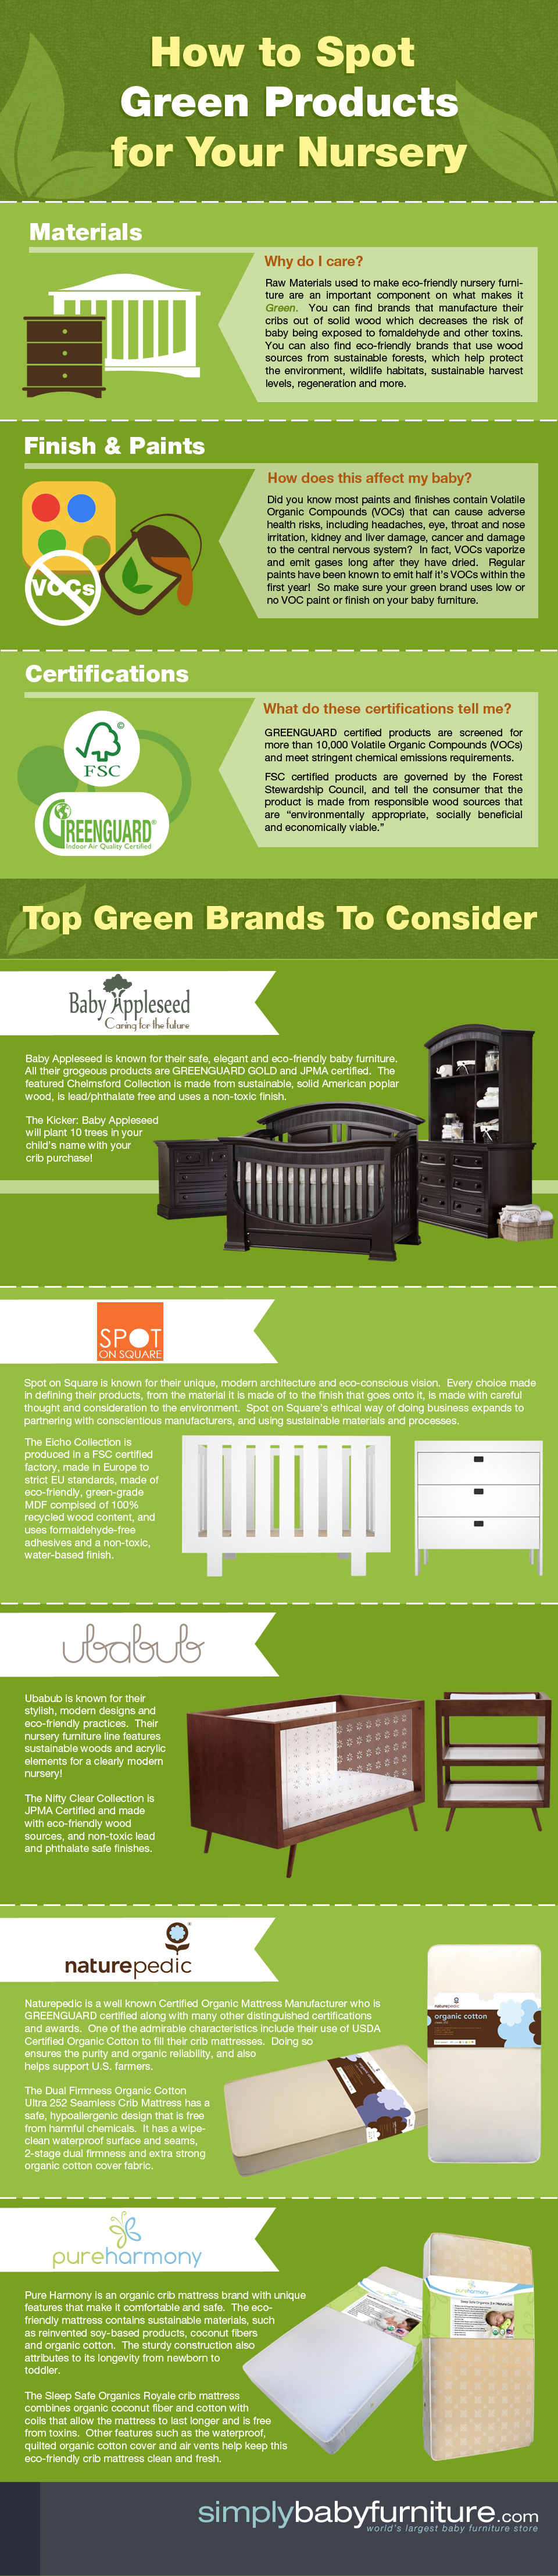 How-to-Spot-Green-Products-for-Your-Nursery